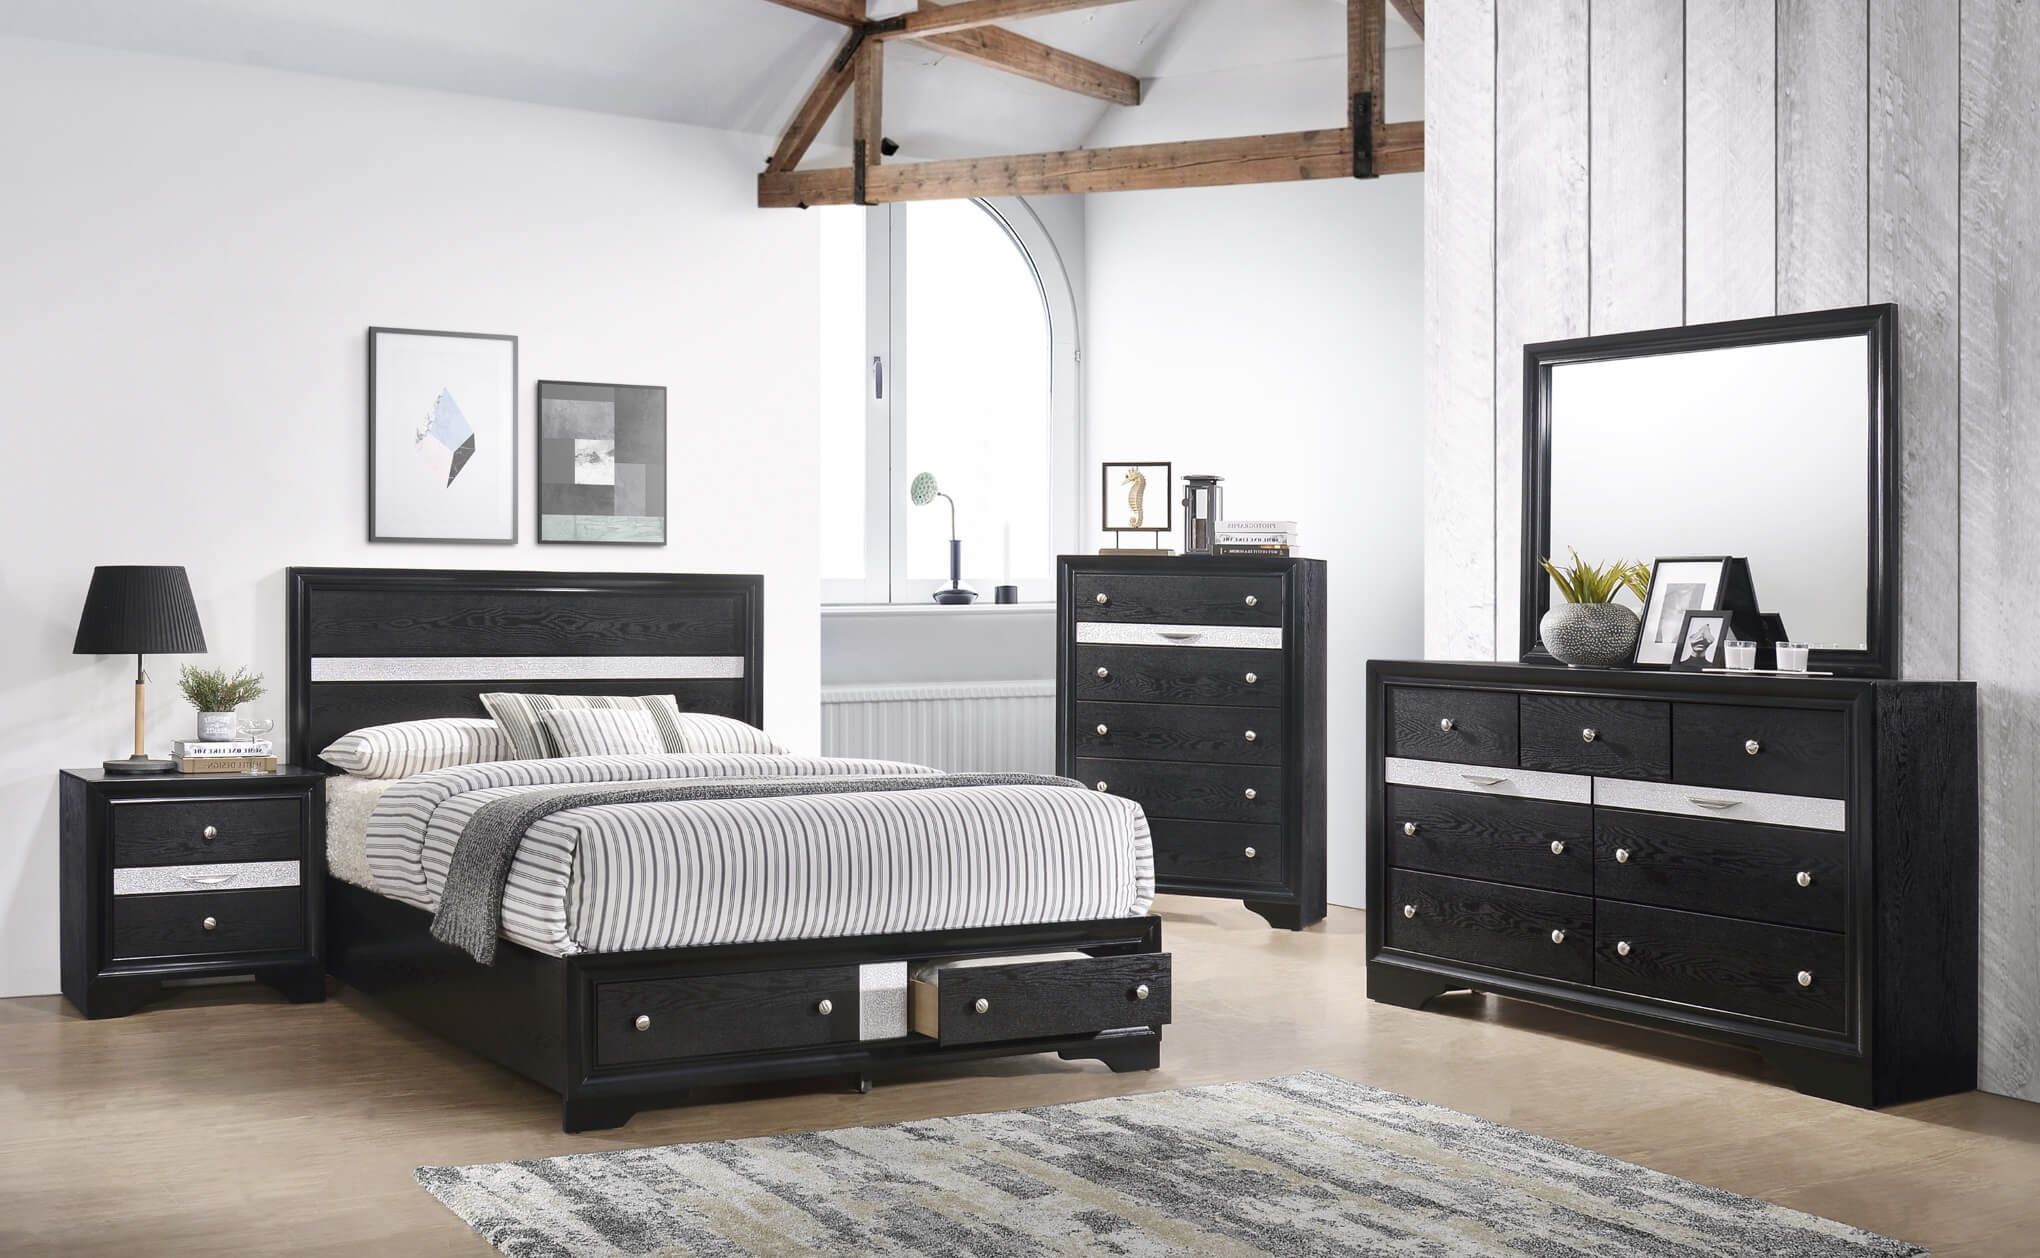 B4670 Regata Black Storage Bedroom Set